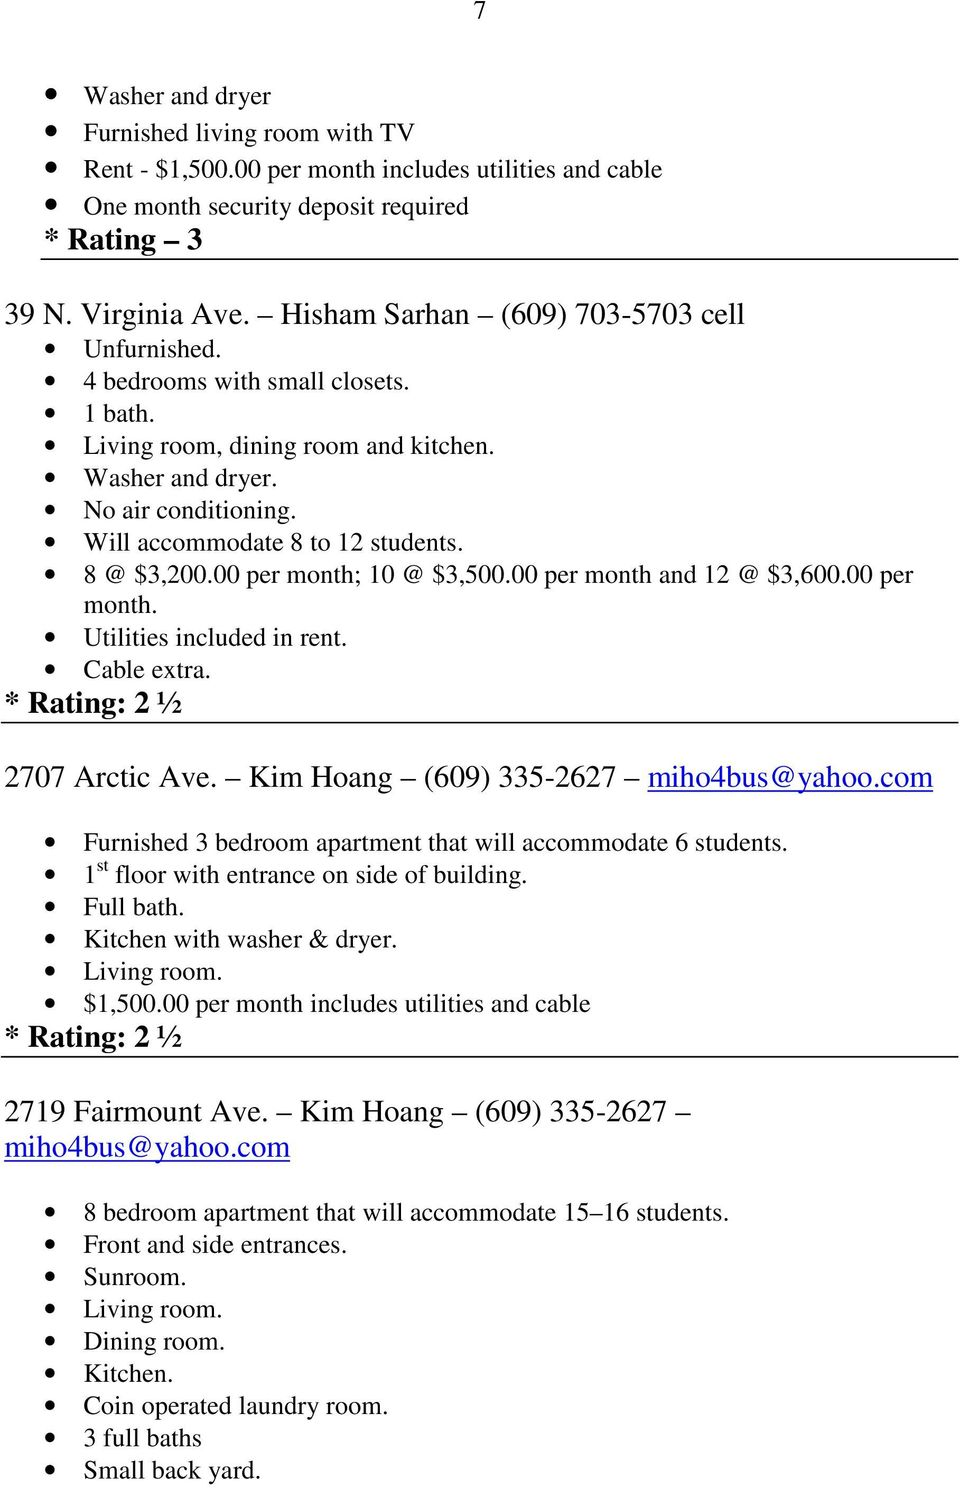 8 @ $3,200.00 per month; 10 @ $3,500.00 per month and 12 @ $3,600.00 per month. Utilities included in rent. Cable extra. * Rating: 2 ½ 2707 Arctic Ave. Kim Hoang (609) 335-2627 miho4bus@yahoo.